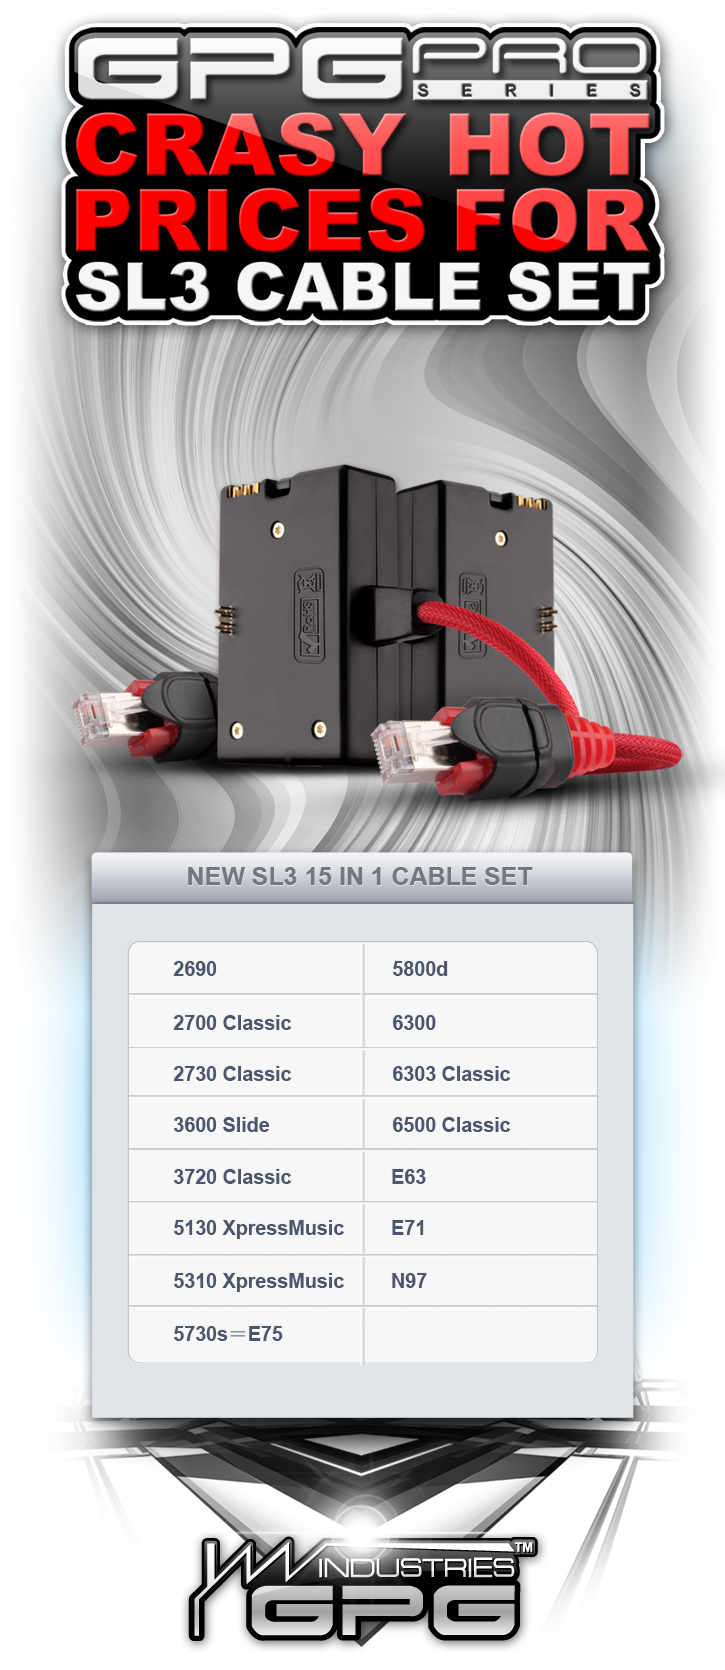 SL3 Pro 15 in 1 Cable set at Cost! 3000 pcs in stock!